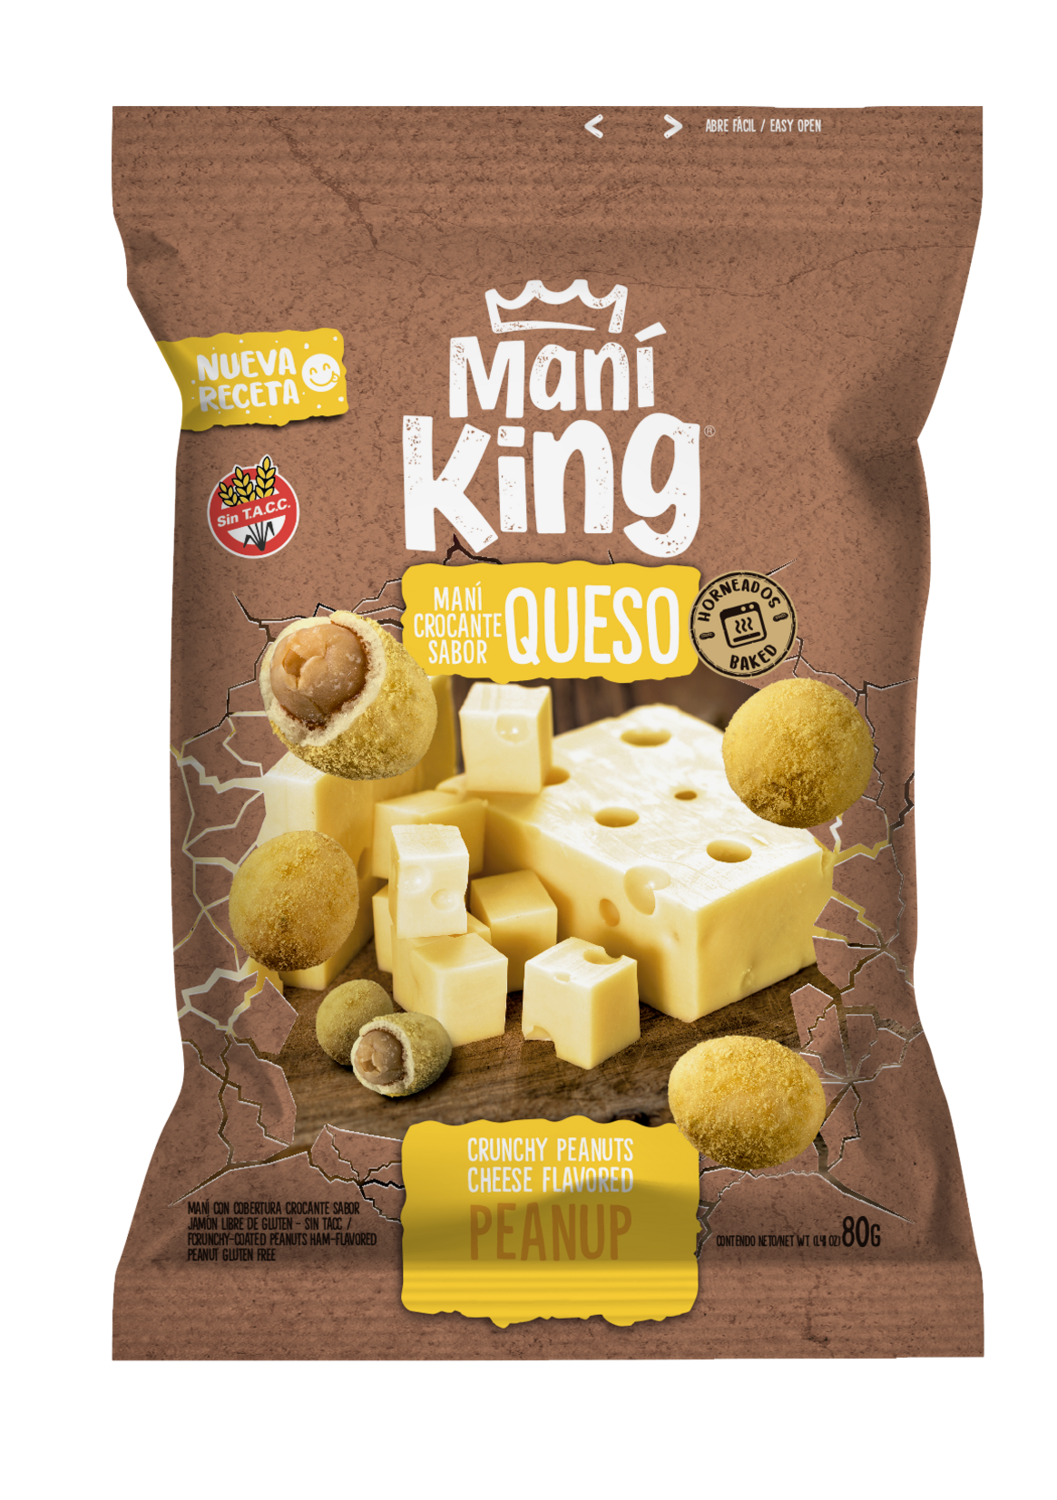 Mani king japones sabor queso x80grs